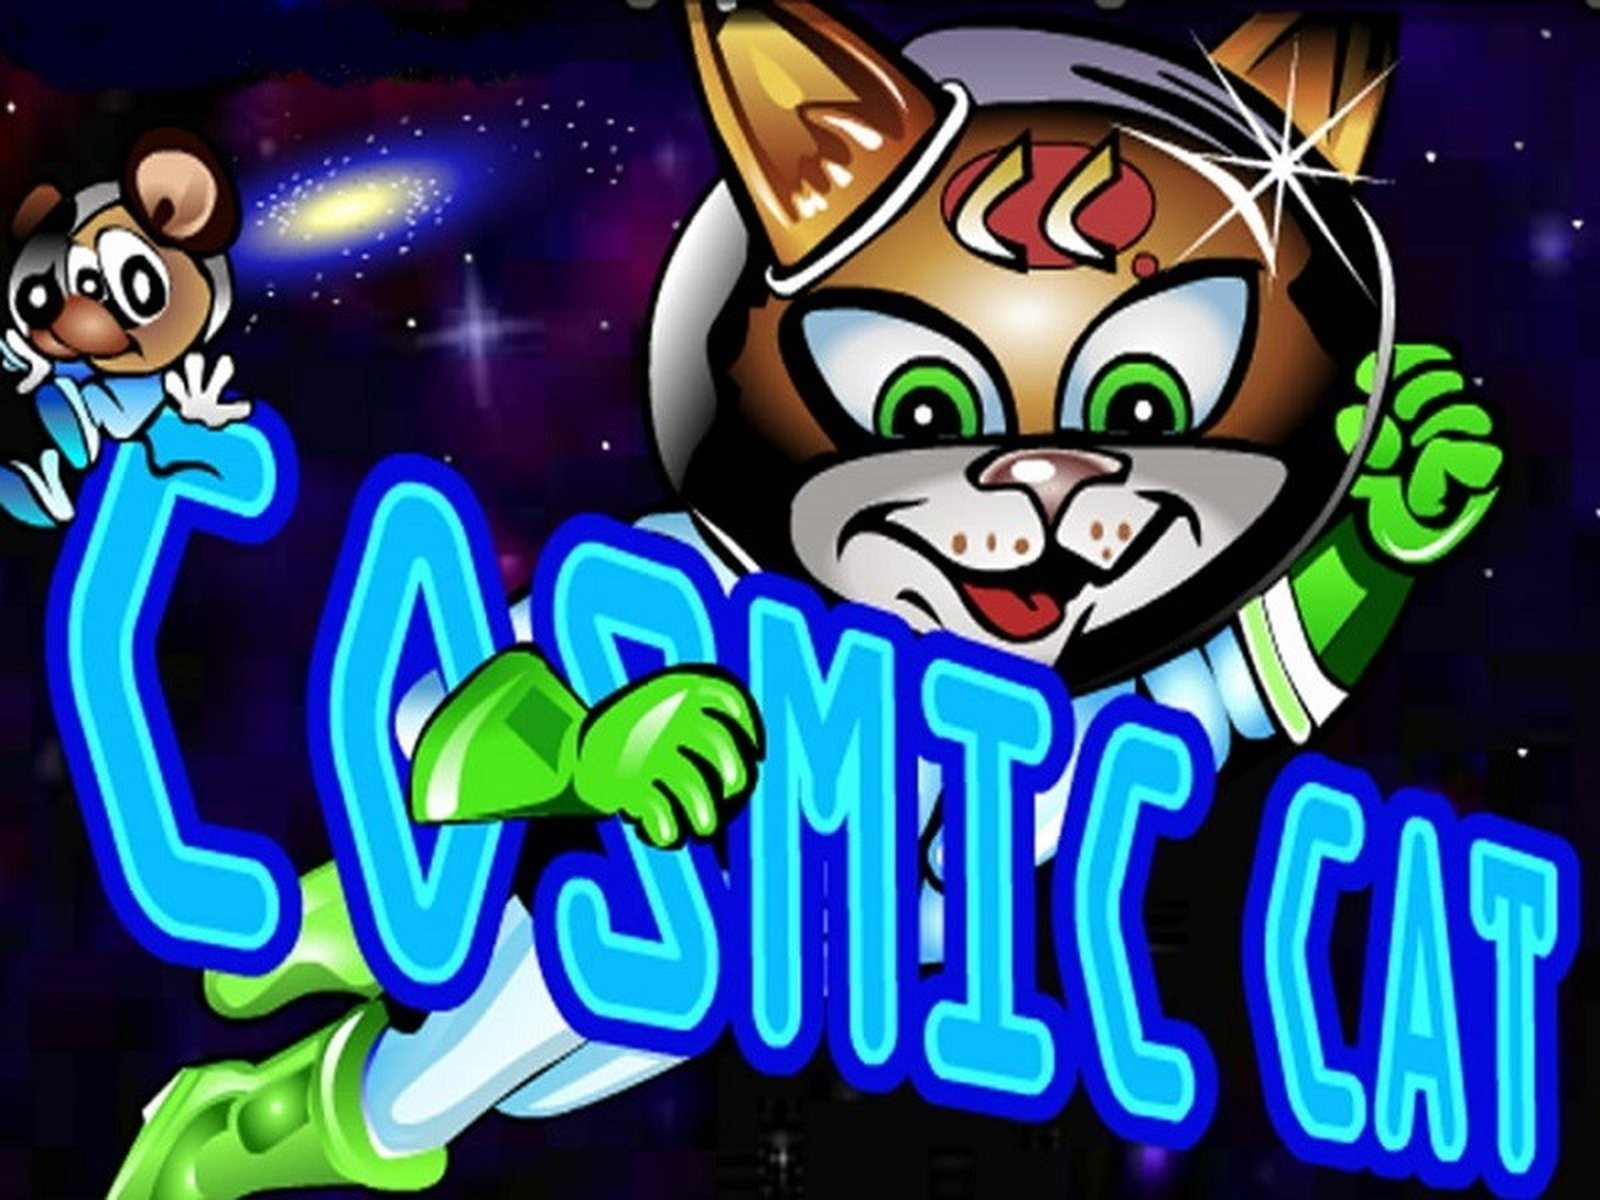 The Cosmic Cat Online Slot Demo Game by Microgaming